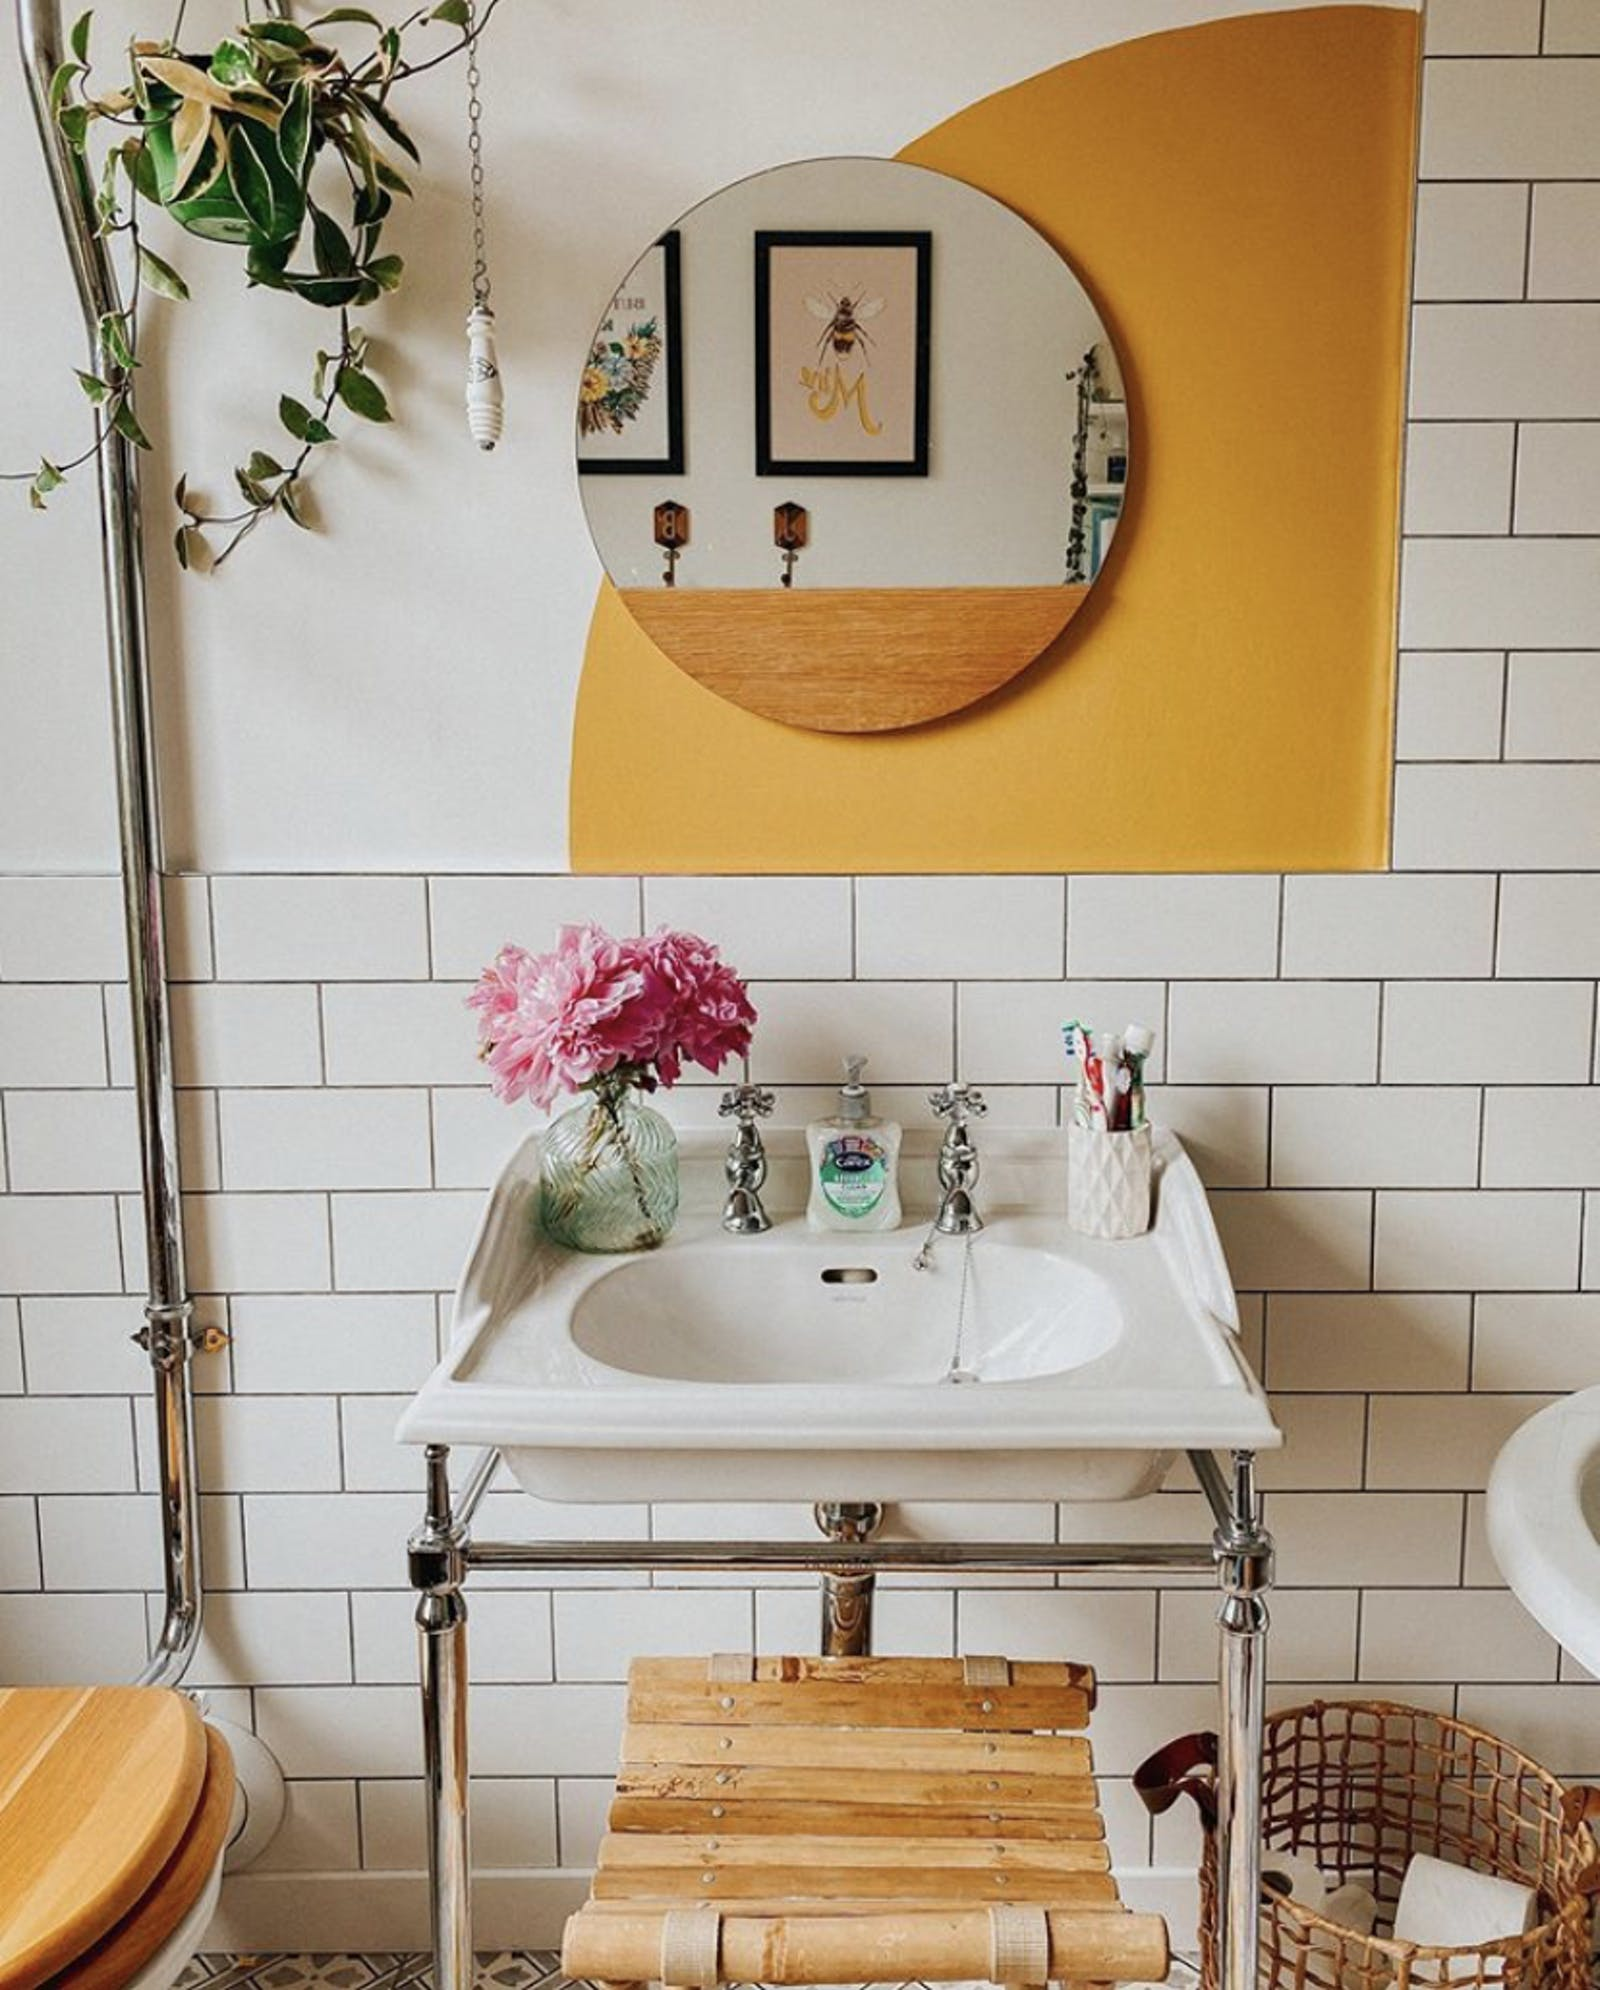 Bathroom wall with orange decal behind a round mirror